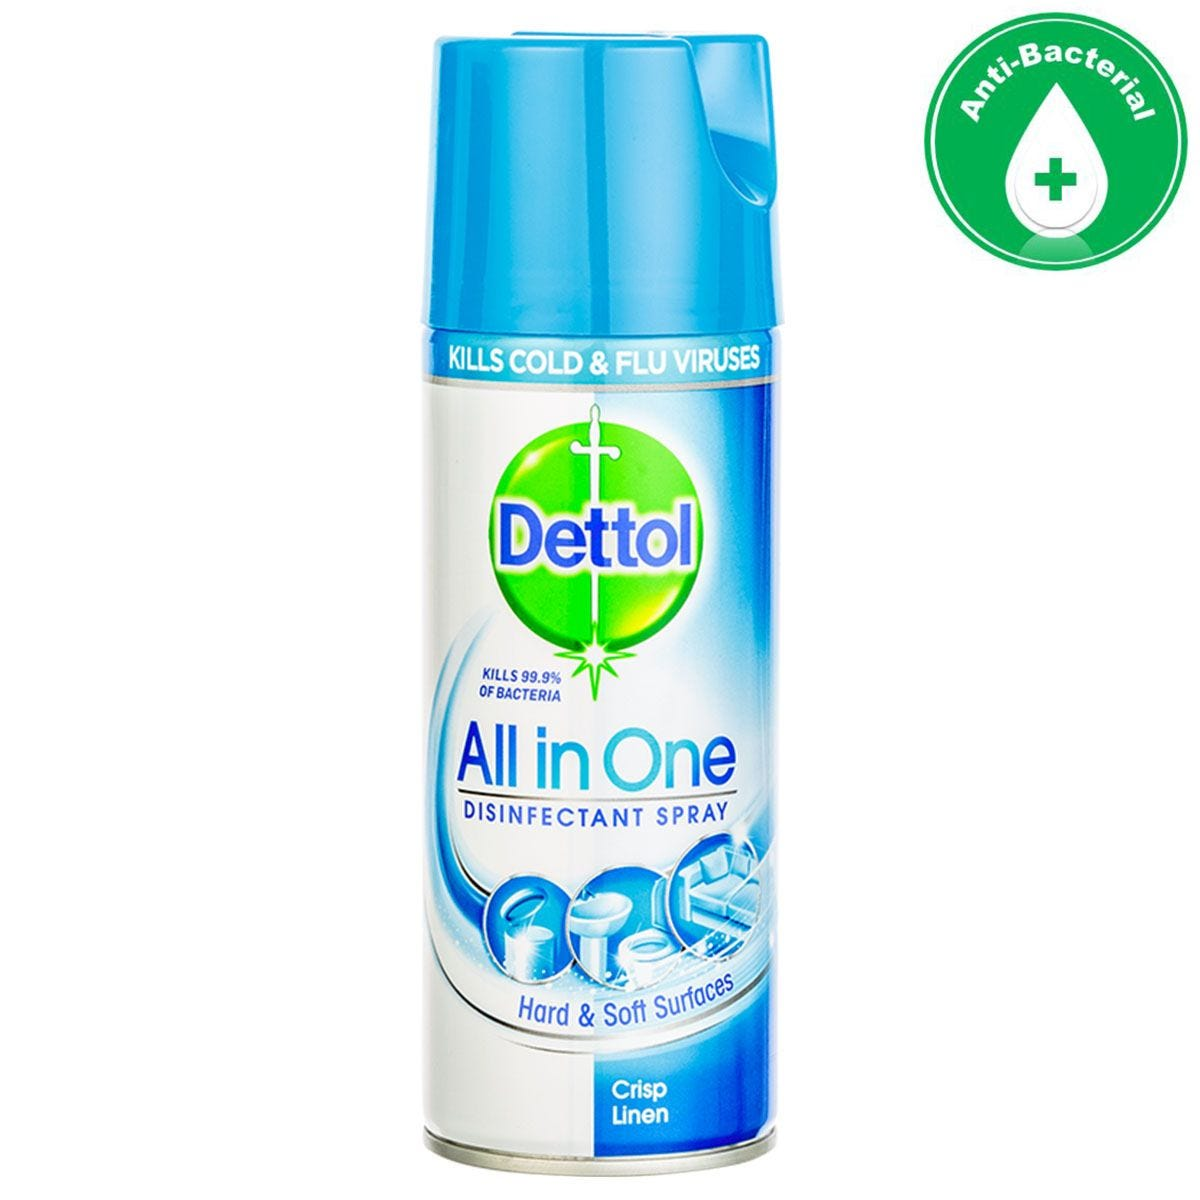 Dettol All-in-One Antibacterial Disinfectant Spray - 400ml